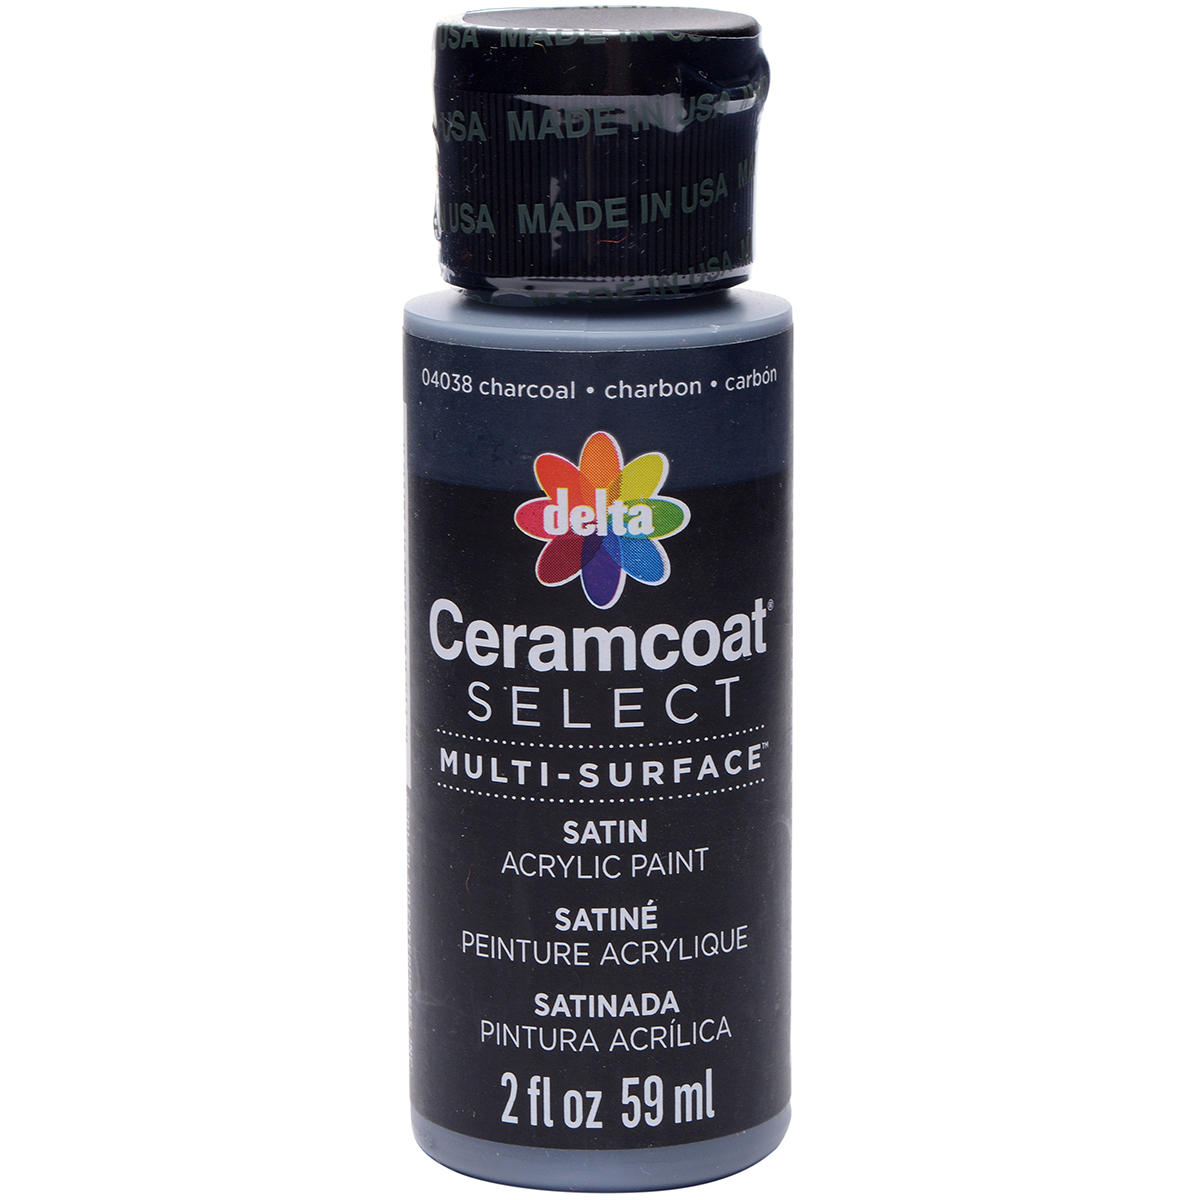 Ceramcoat Select Multi-Surface Paint 2oz-Charcoal